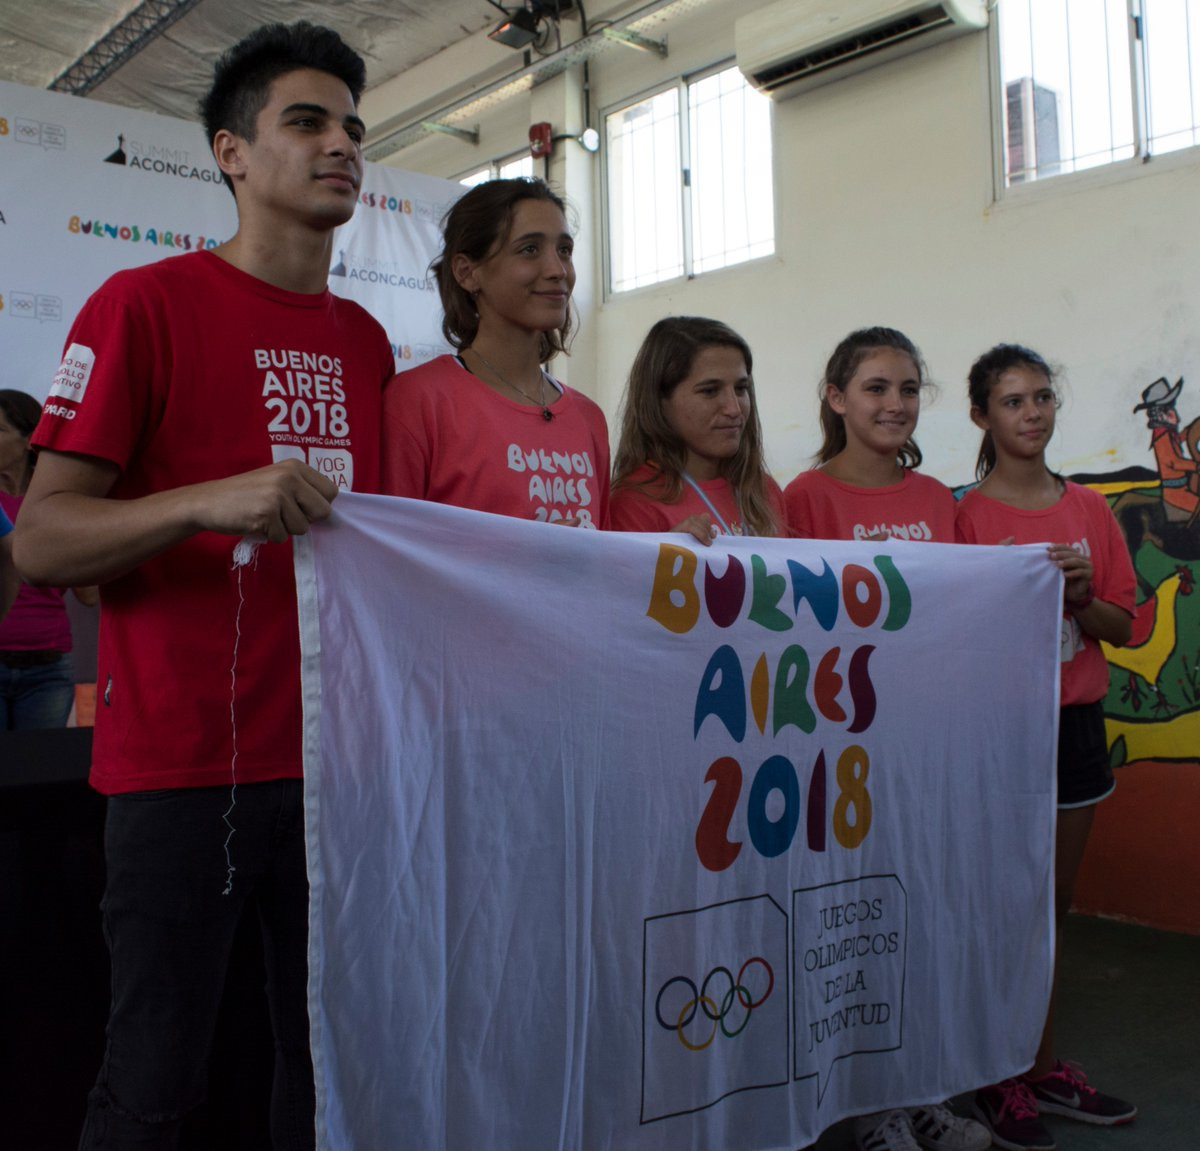 Olympic athletes were part of the expedition ©Buenos Aires 2018